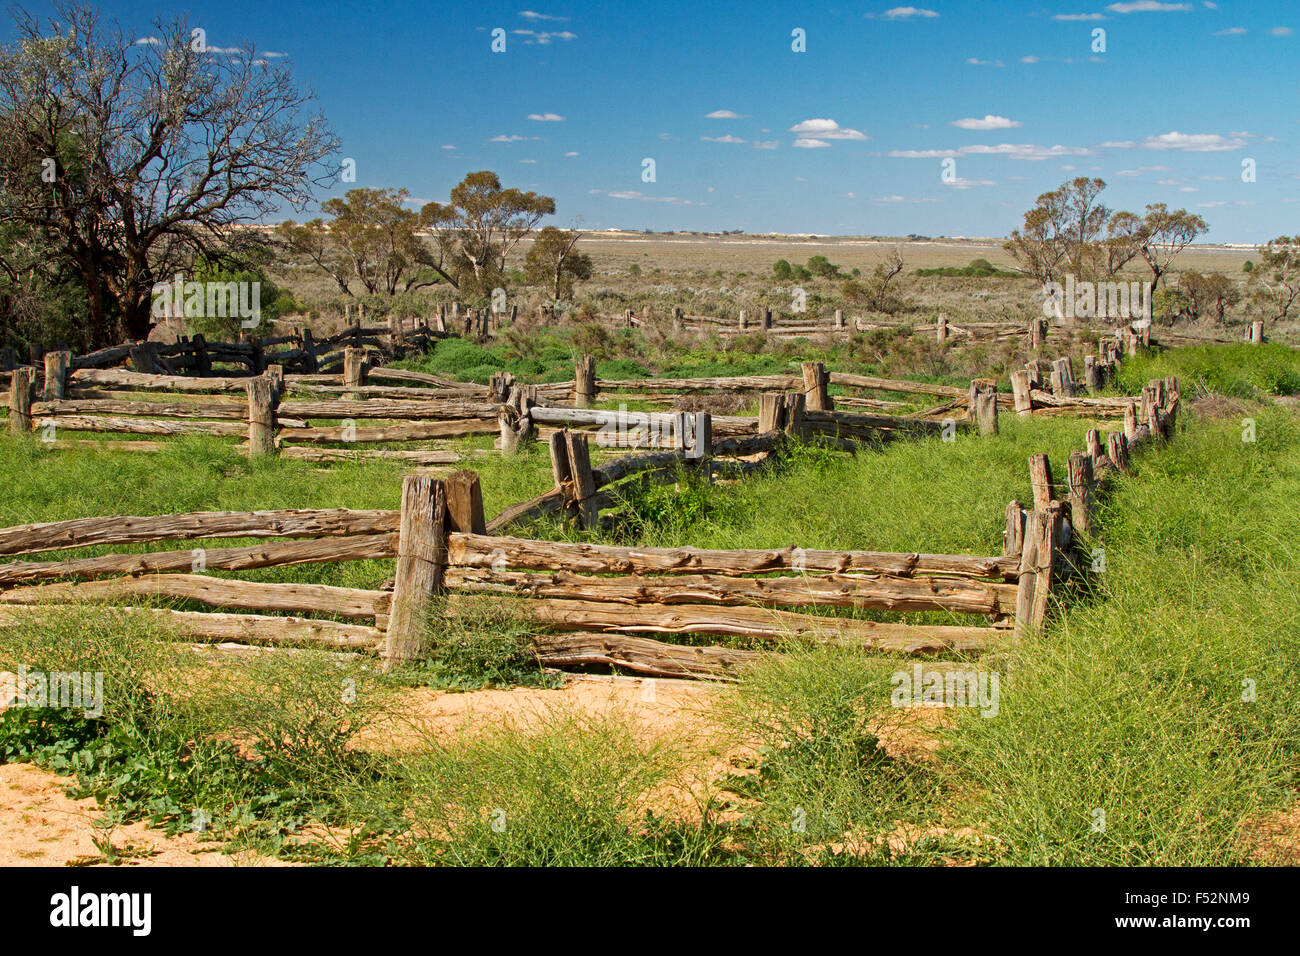 Stock yards made from cypress pine in Australian outback landscape of emerald grass after rain at old Zanci station Stock Photo